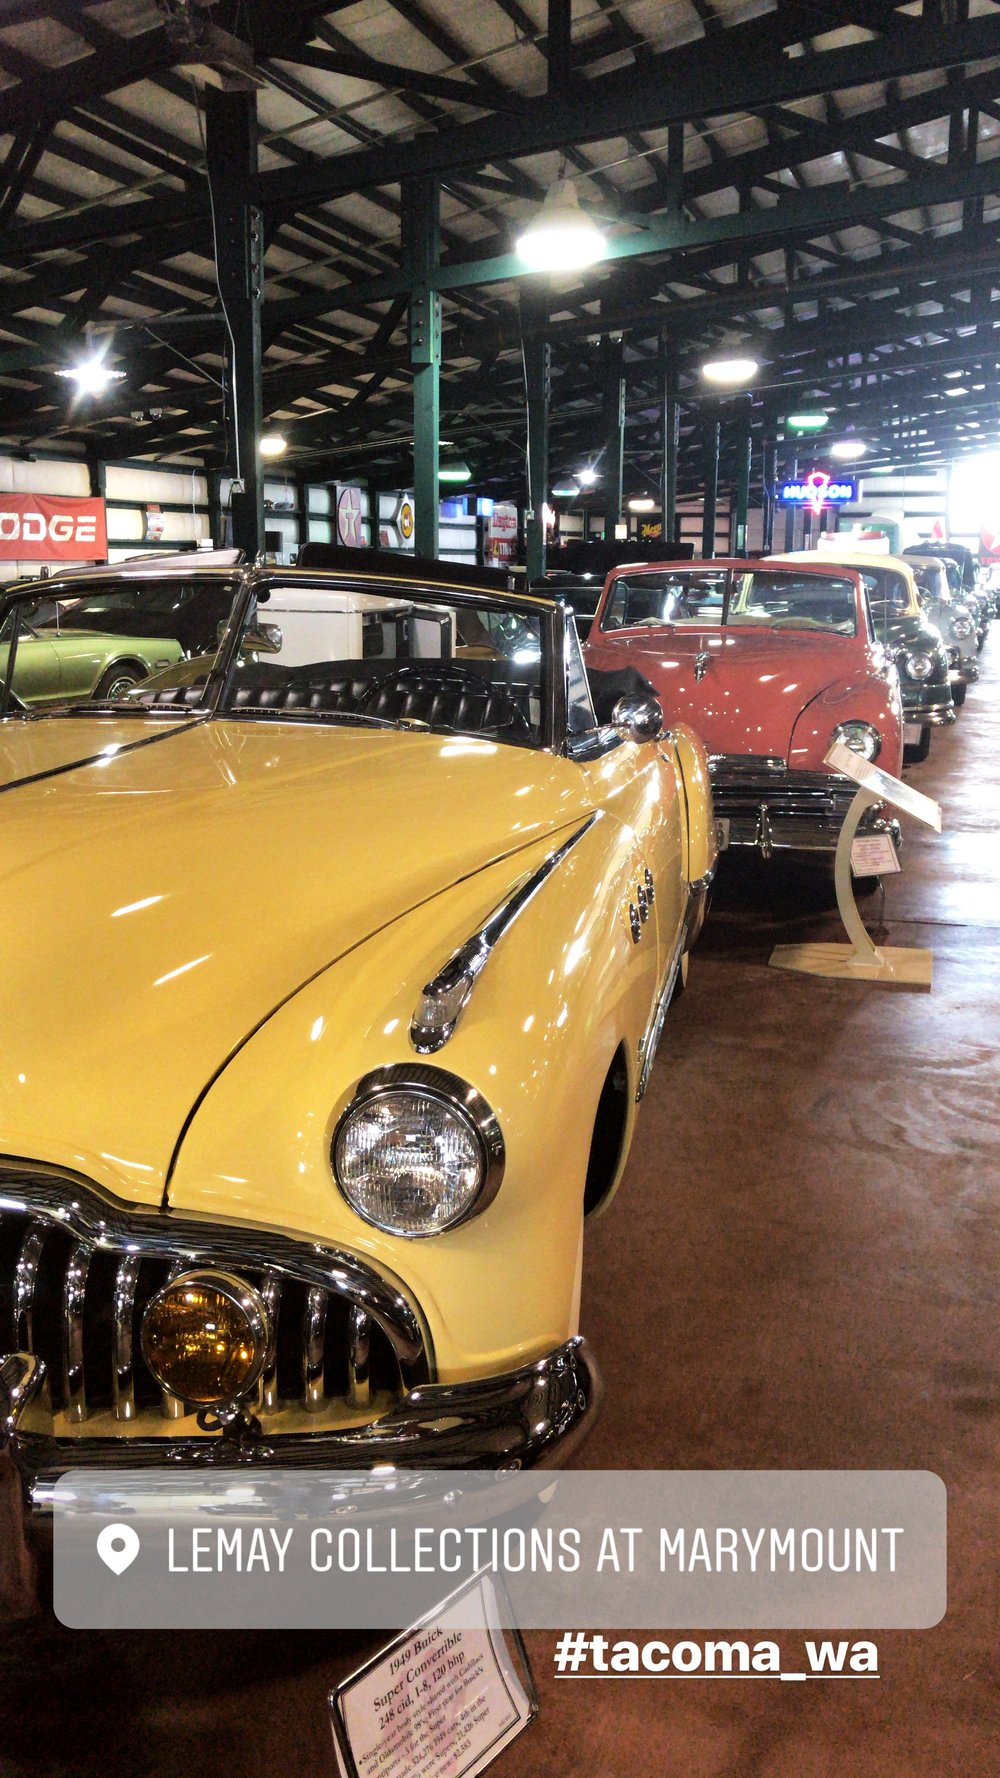 A row of cars in the collections